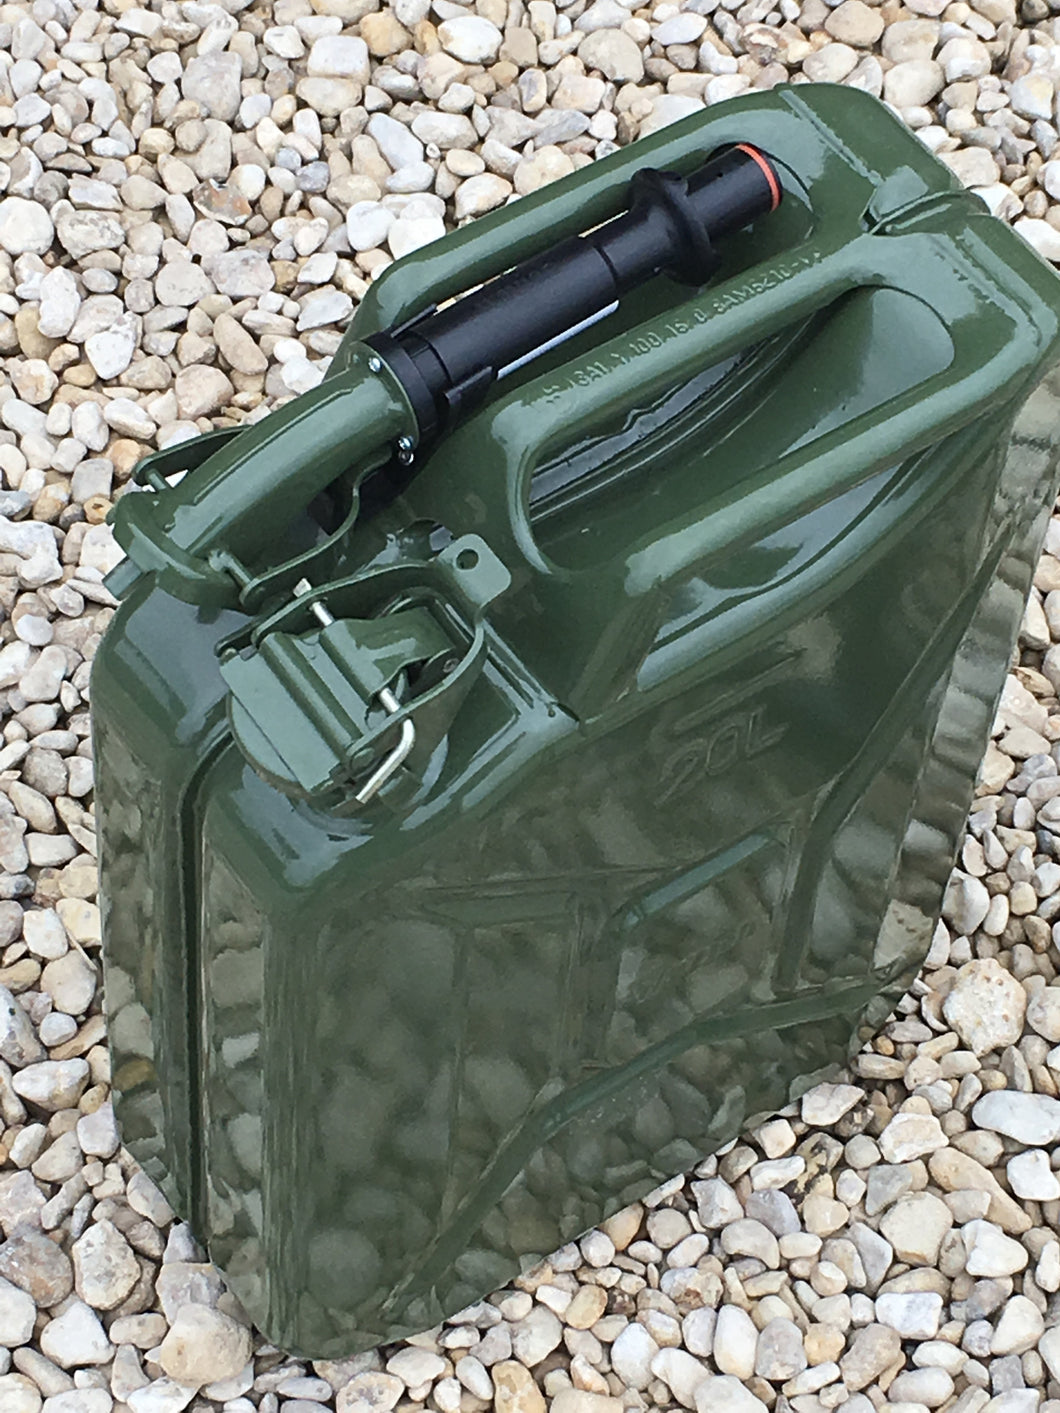 Wavian OD 20 Liter Fuel Can System - Blackland Prairie Survival, Supply, and Surplus